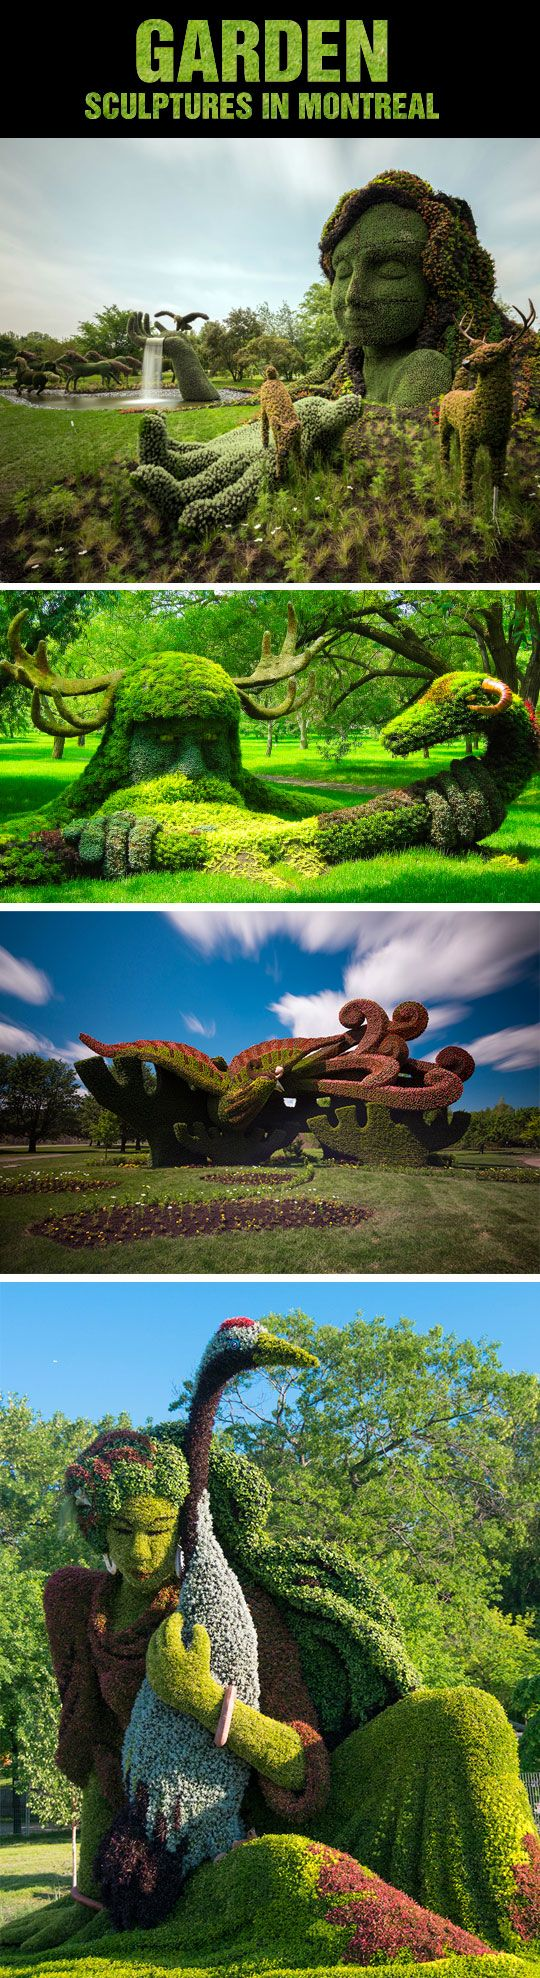 Can you believe these sculptures at the Montreal Botanical Gardens?? Stunning! #travel #travelbucketlist #traveltuesday